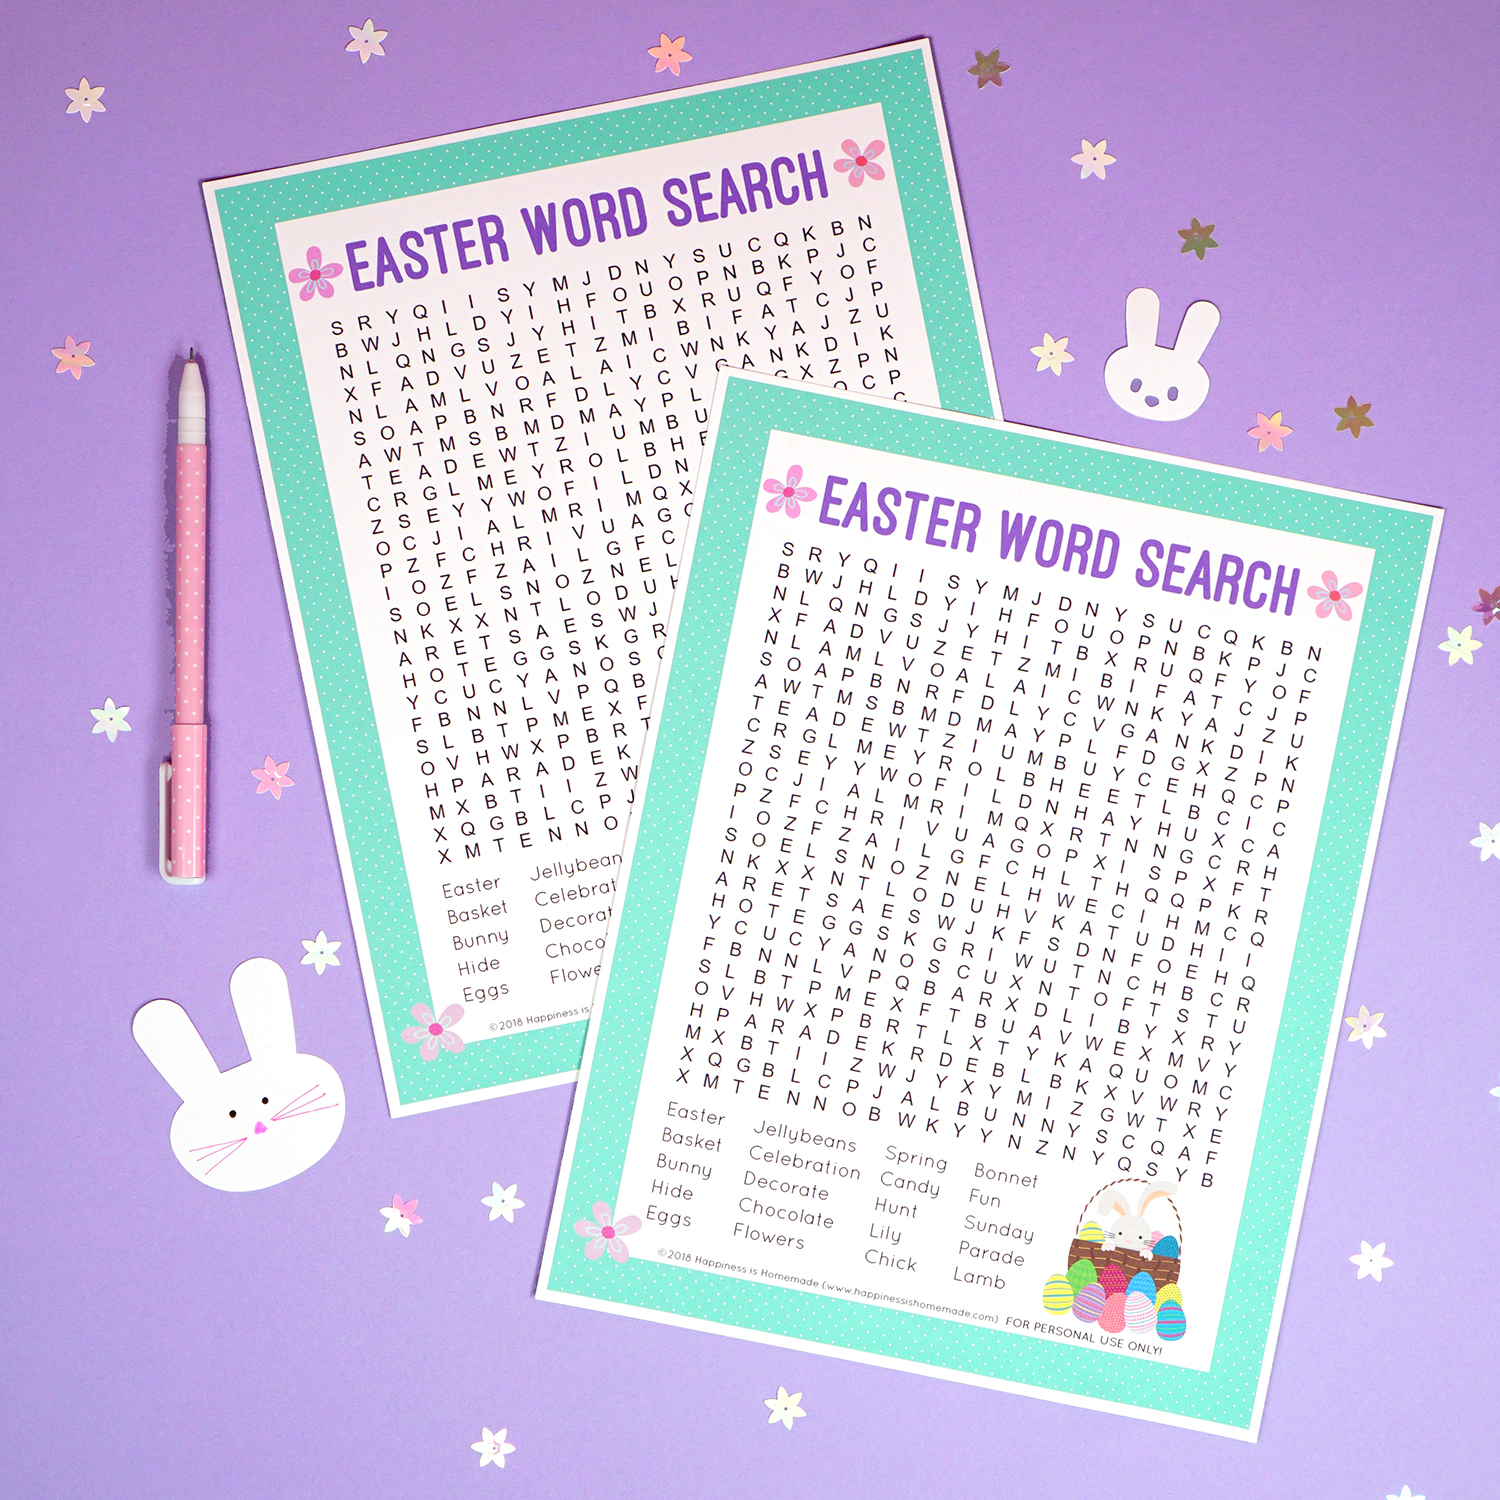 photo about Easter Word Search Printable Worksheets referred to as Easter Phrase Appear Printable - Joy is Do-it-yourself